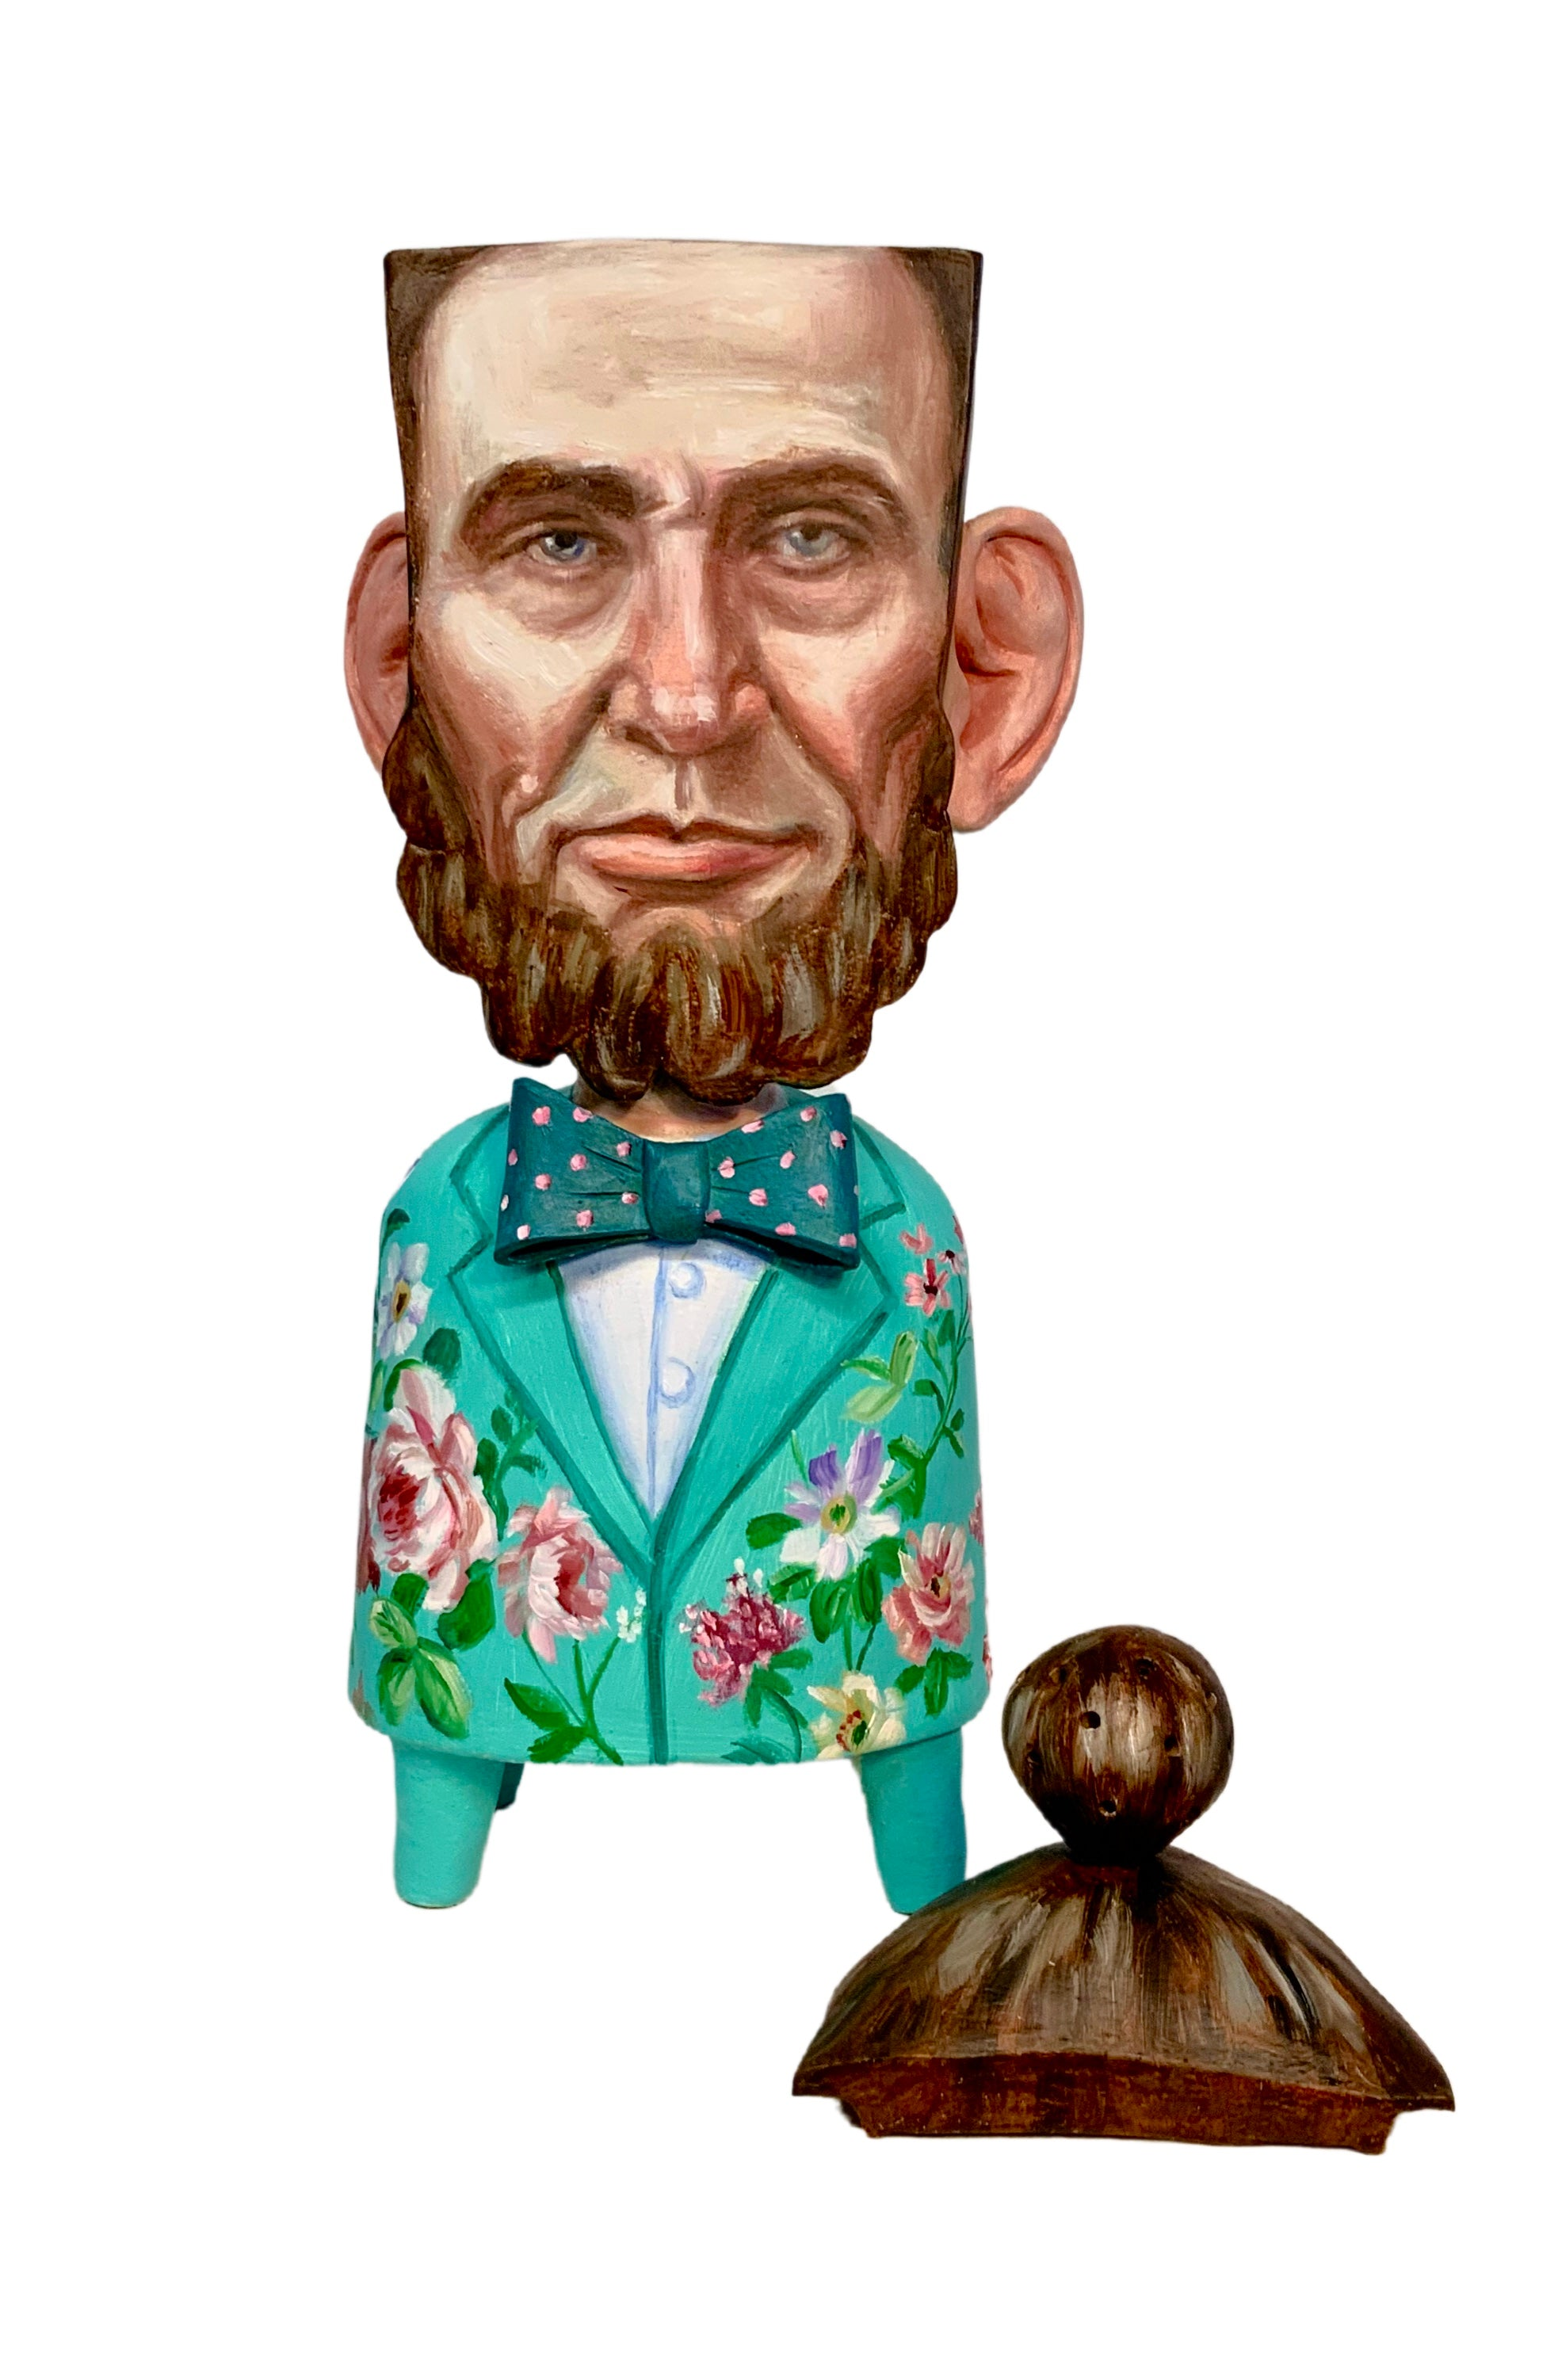 Honest Abe With A Man-Bun